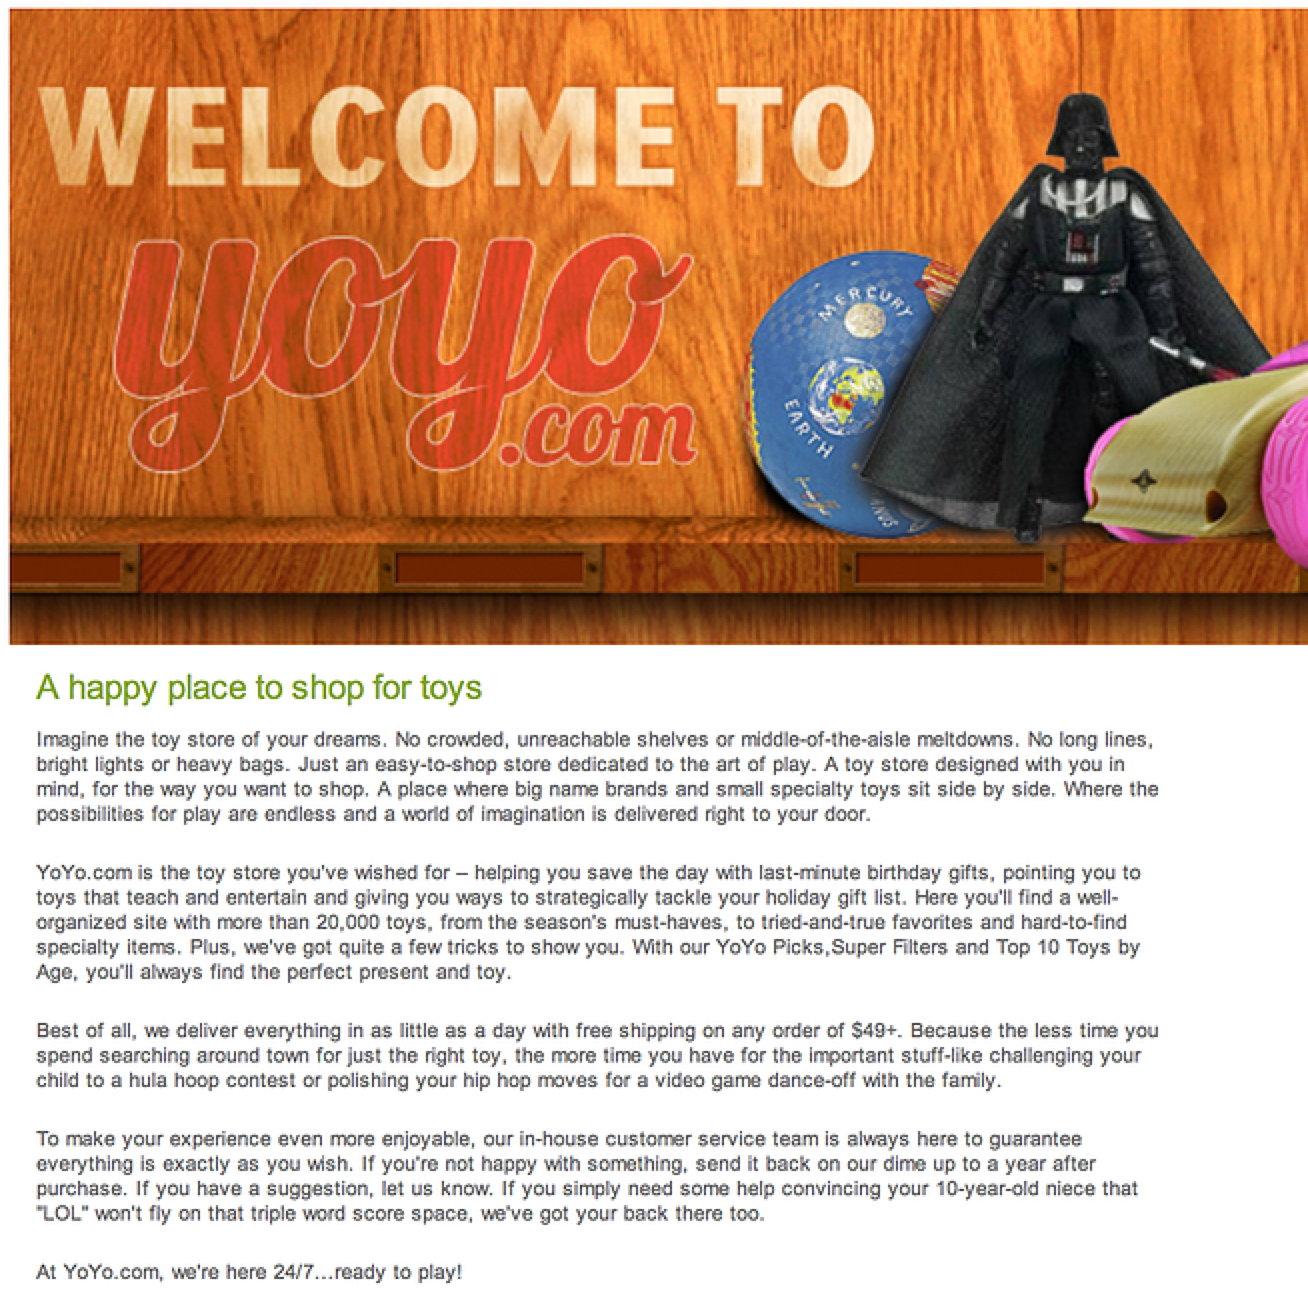 About Us: YoYo.com (sister site)